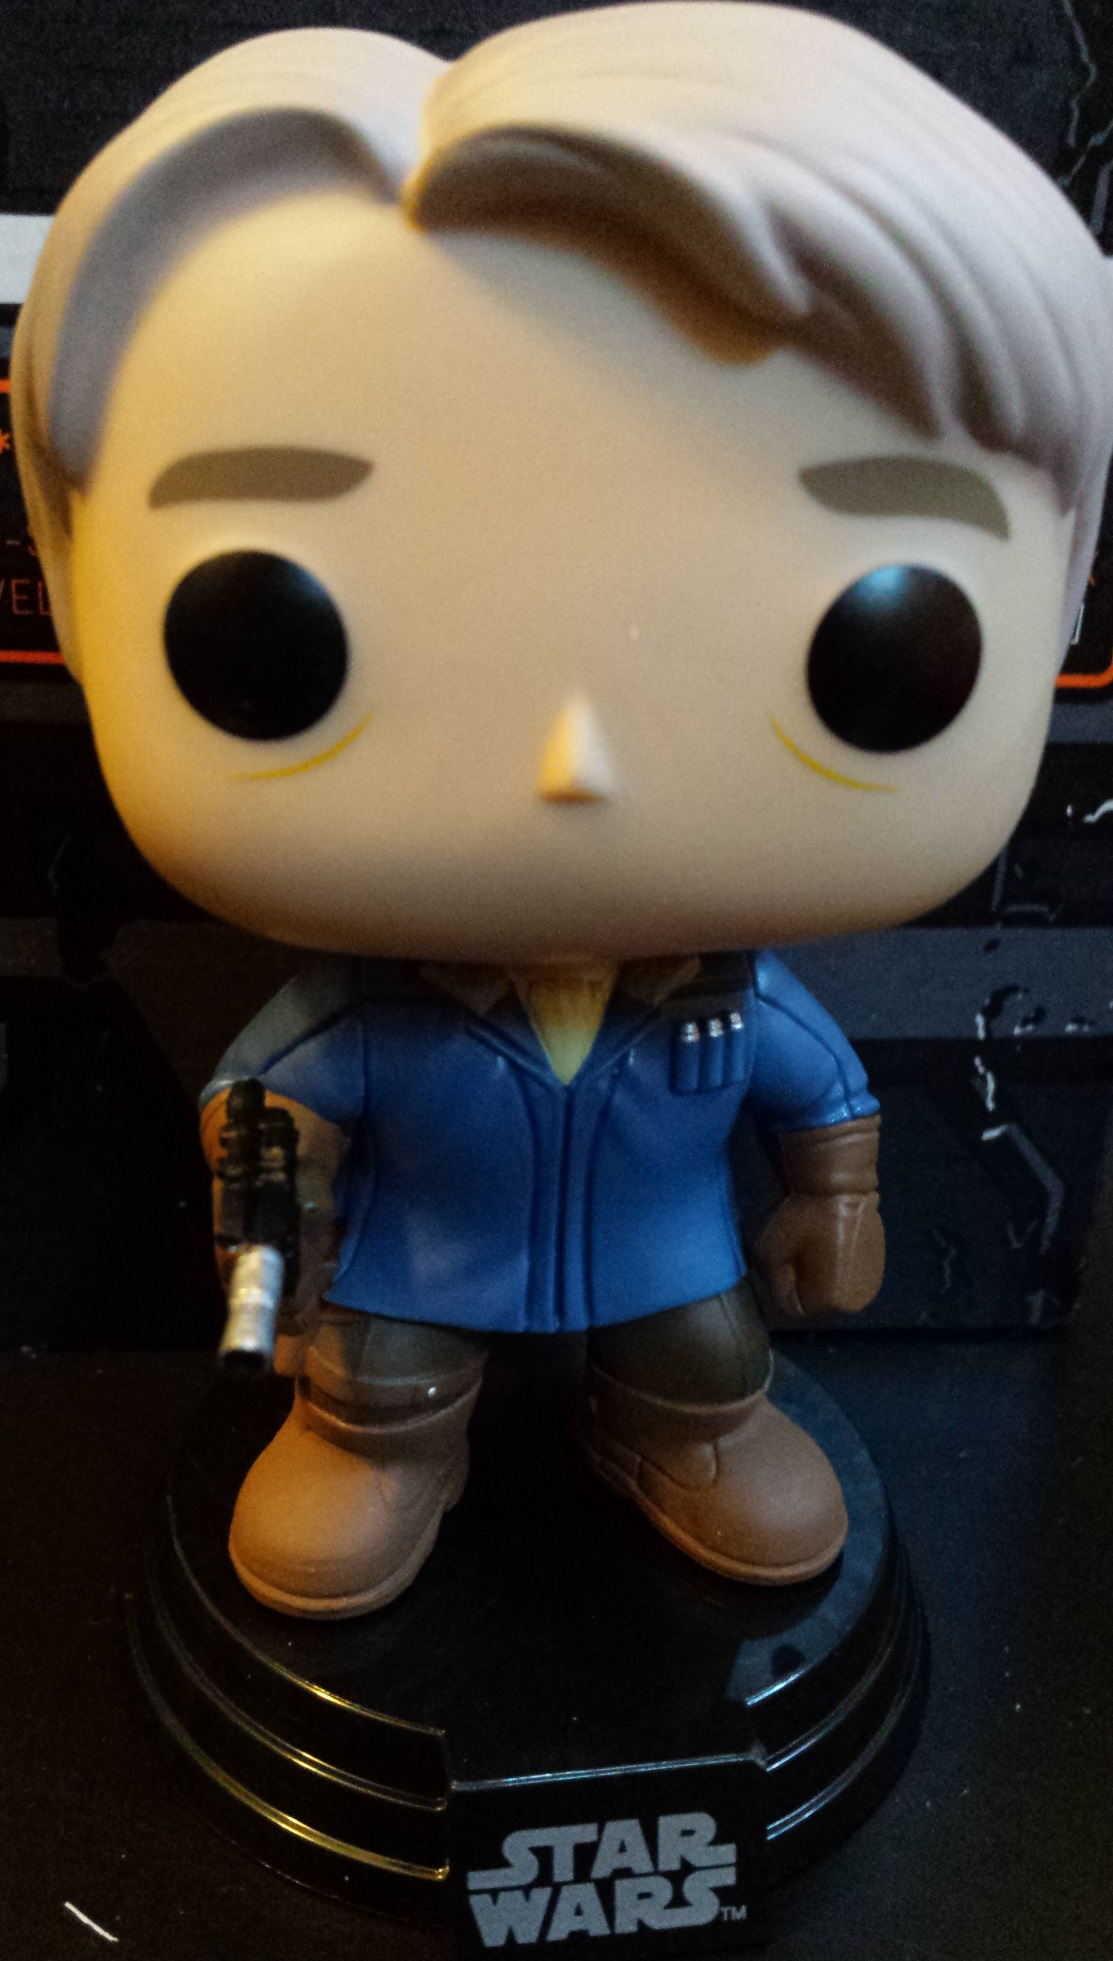 Han solo, star wars, loot crate, loot crate review, december loot crate, discovery loot crate